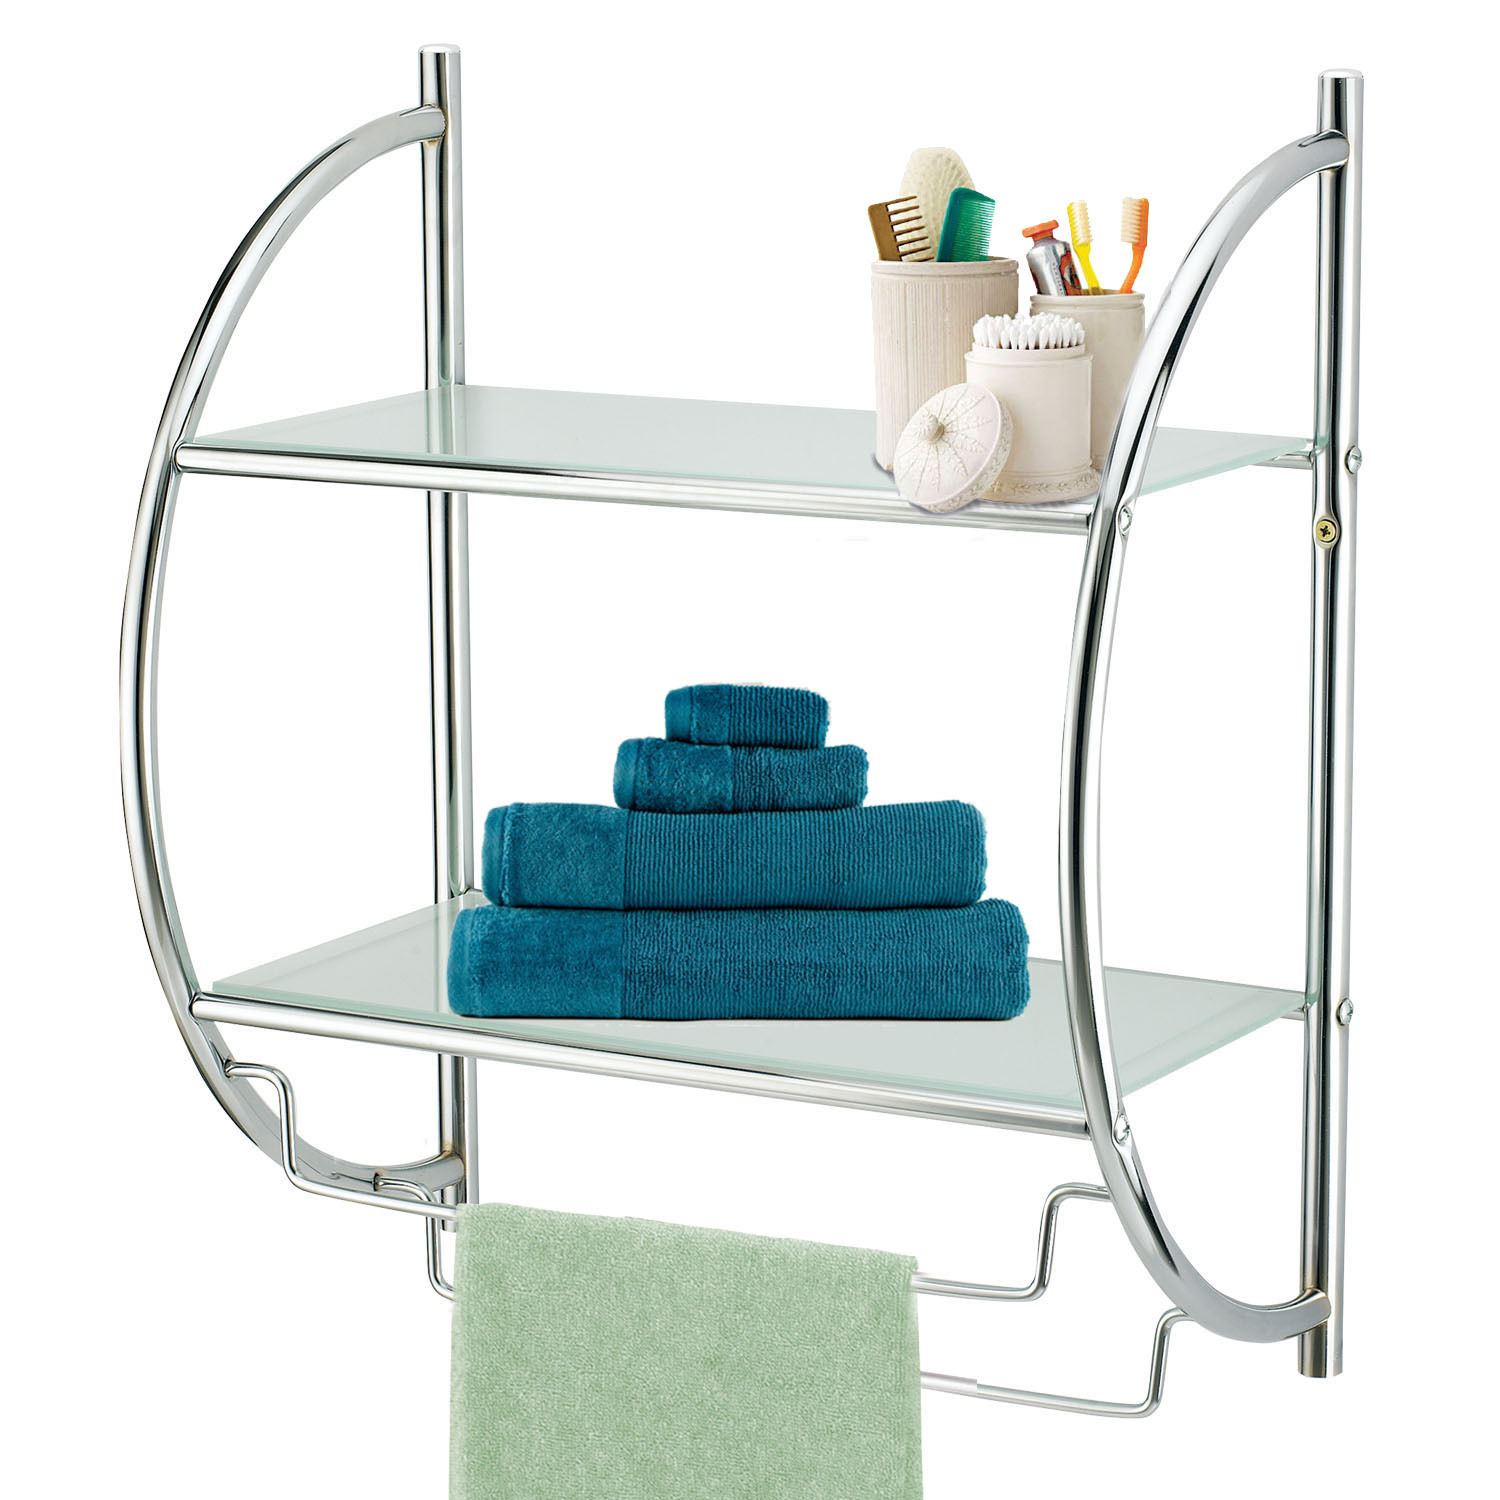 MODERN CHROME QUALITY BATHROOM SHELF TOWEL STAND RACK RAILS | eBay